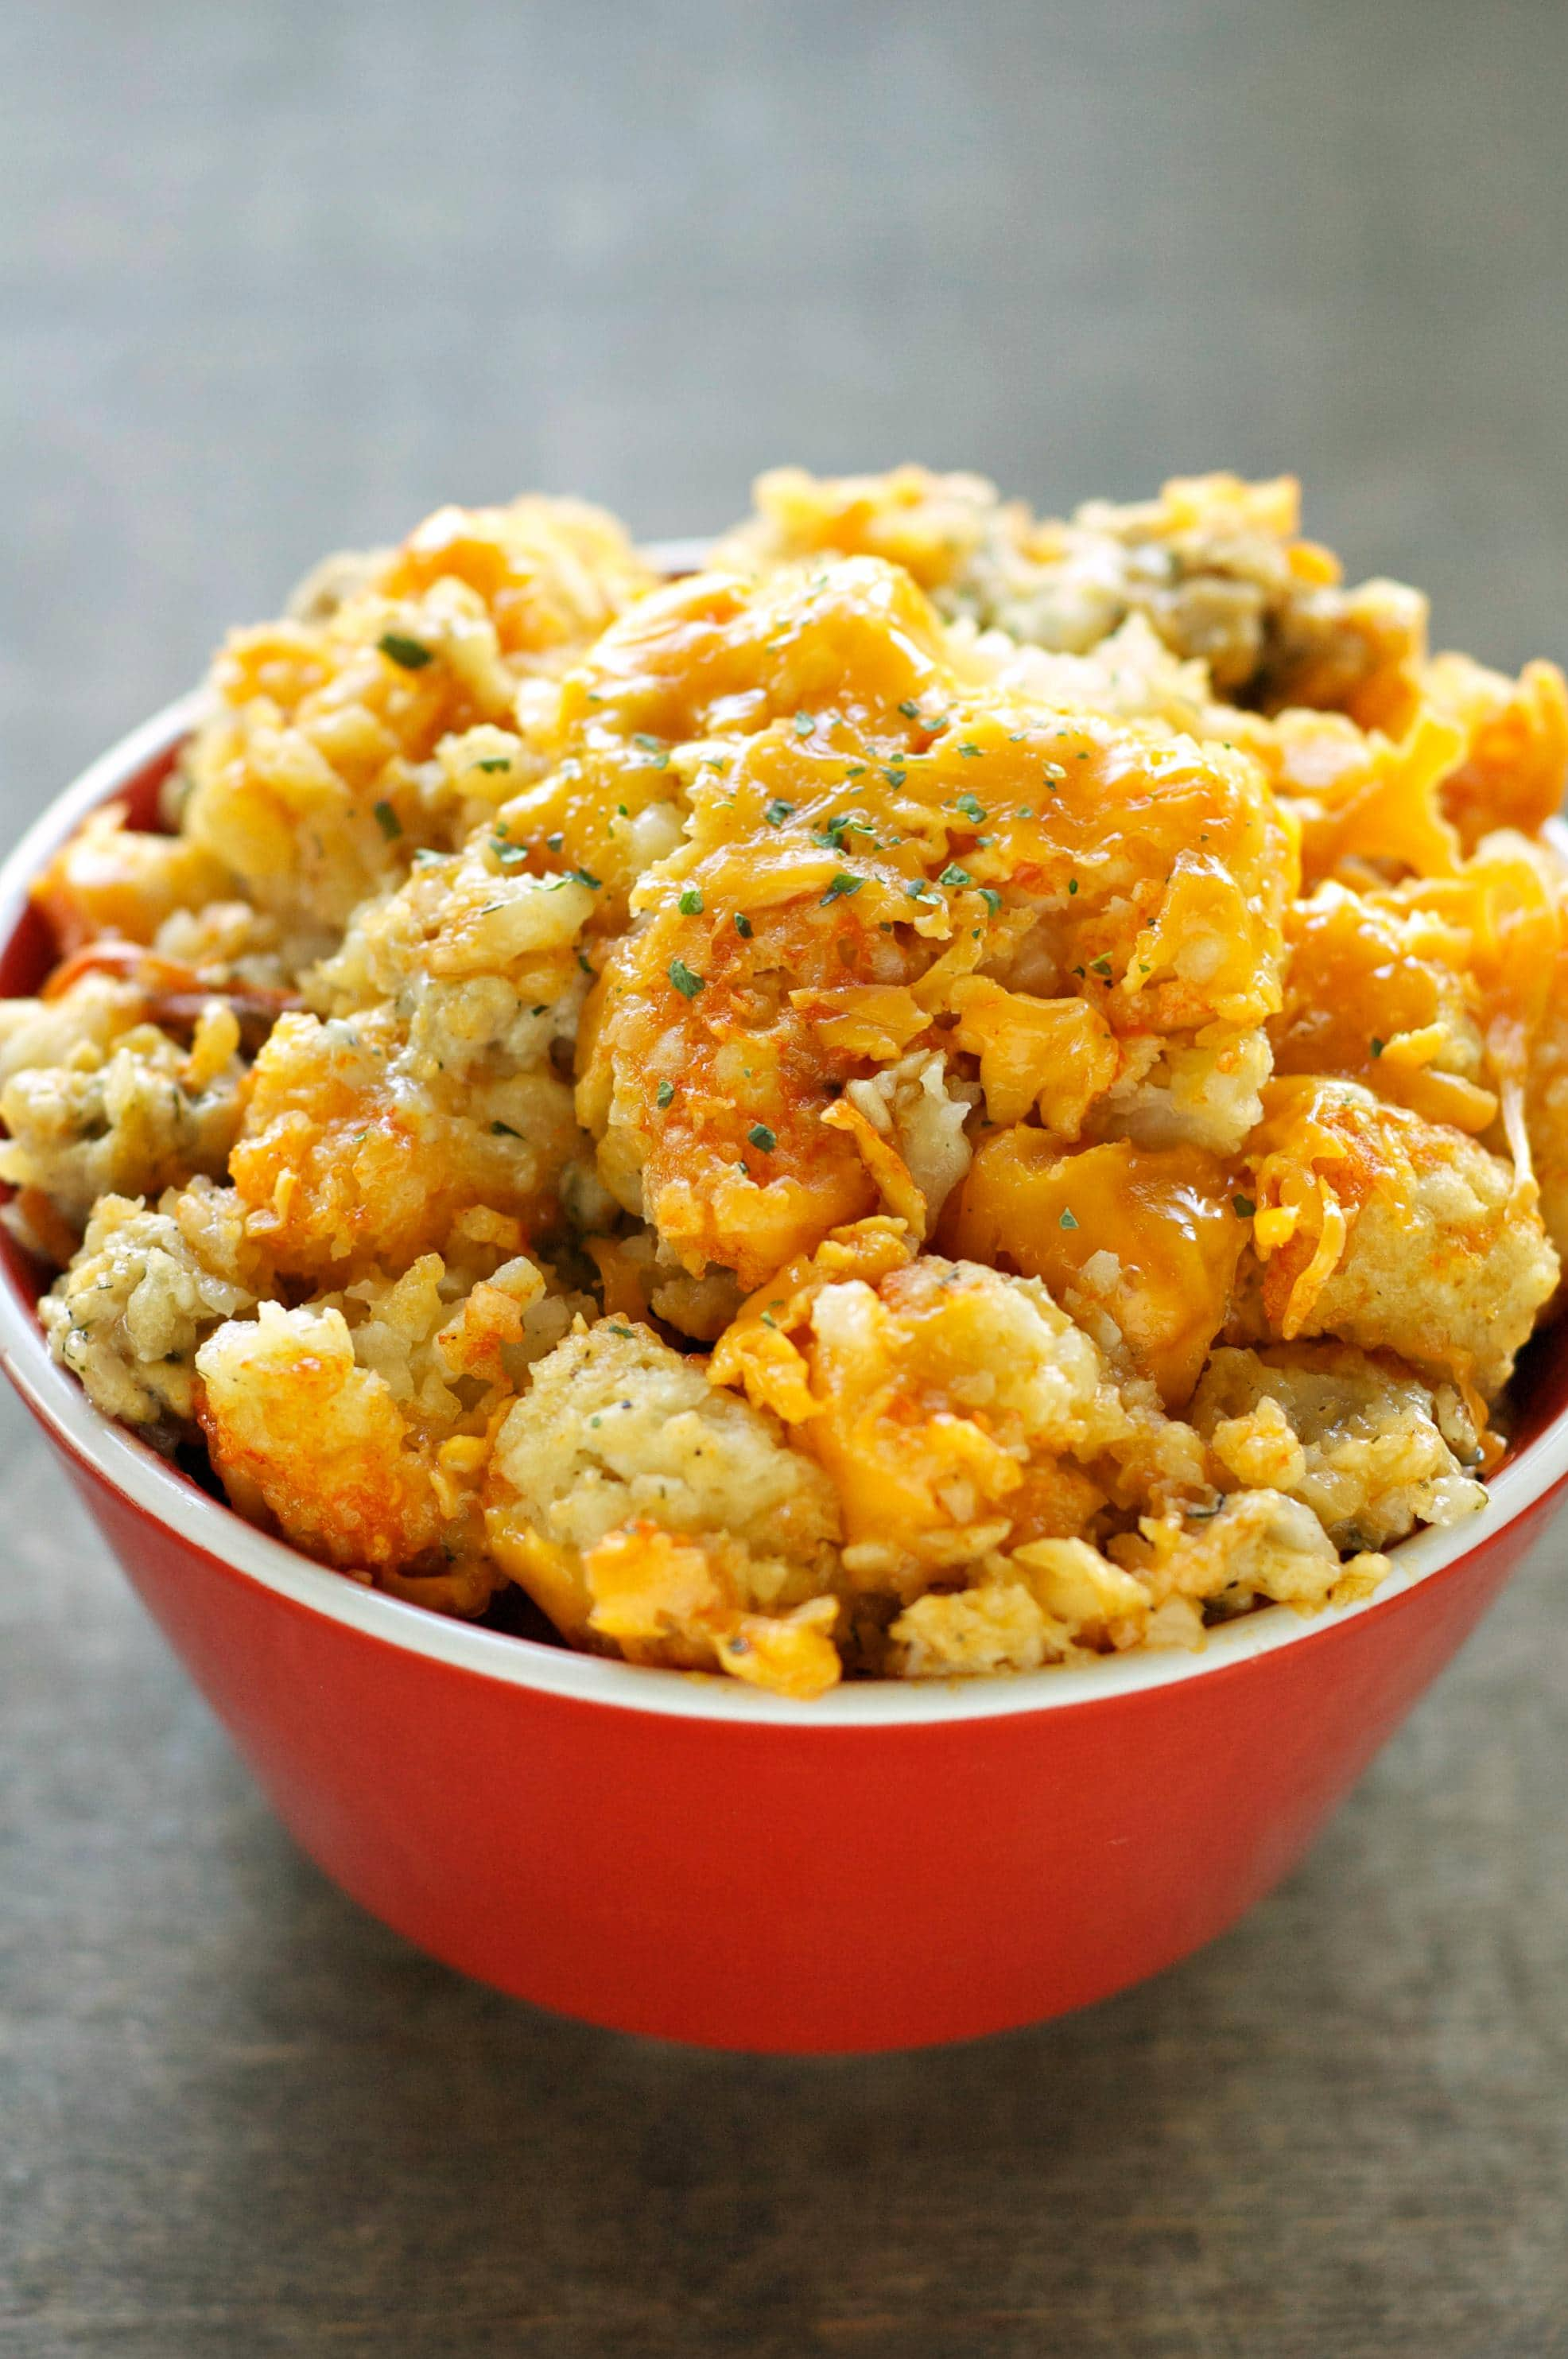 Slow Cooker Buffalo Chicken Tater Tot Casserole covered in melted cheese and sprinkled with seasoning in a red bowl.